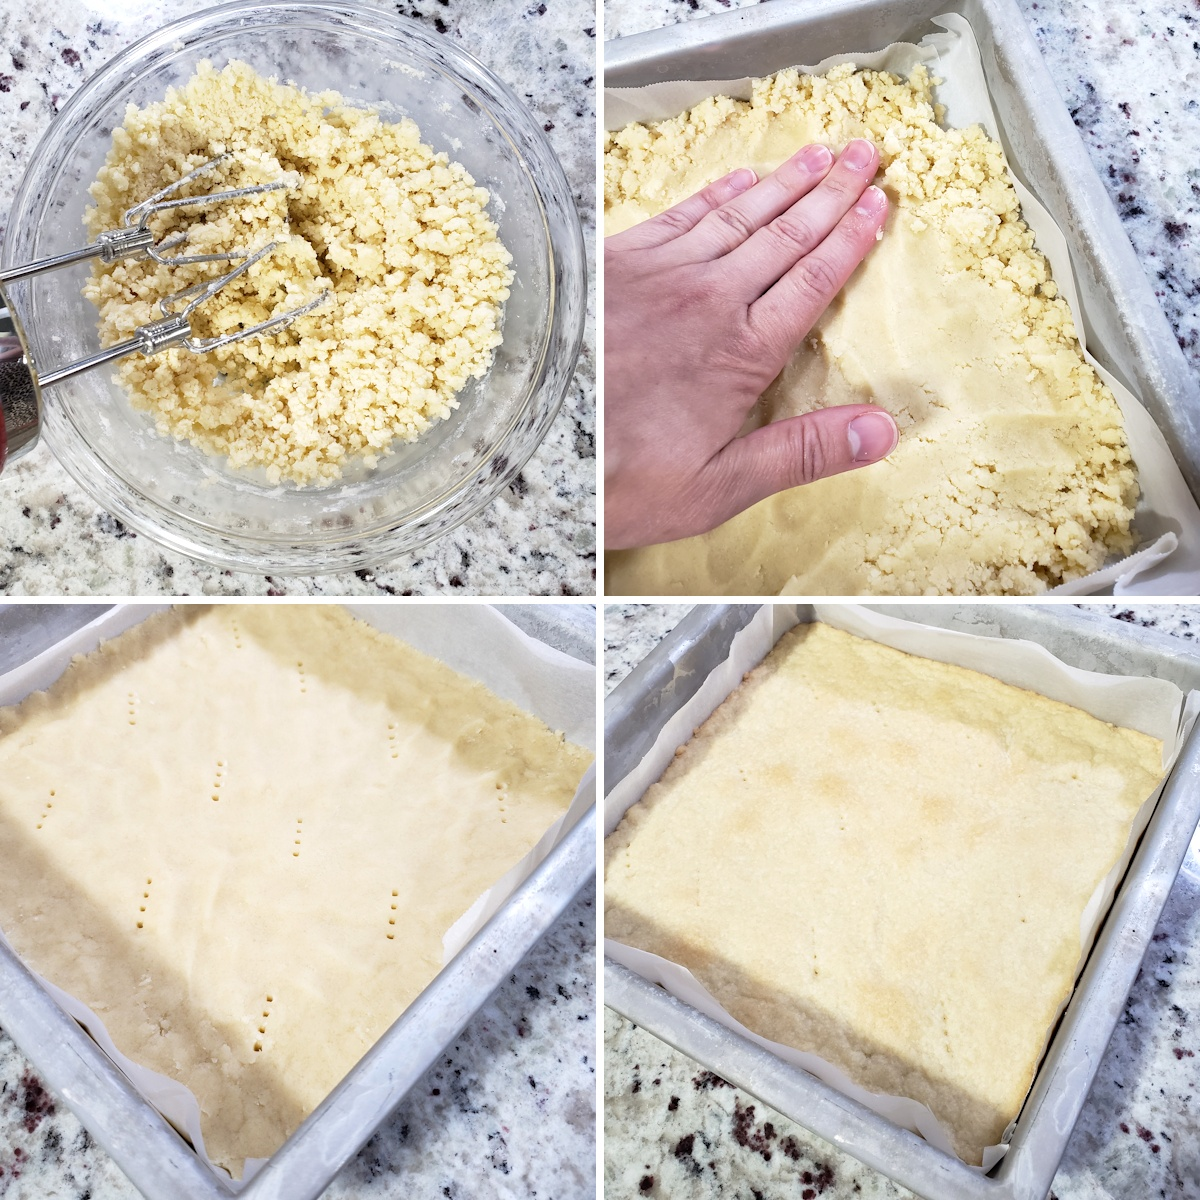 Pressing a shortbread crust into a square baking pan.